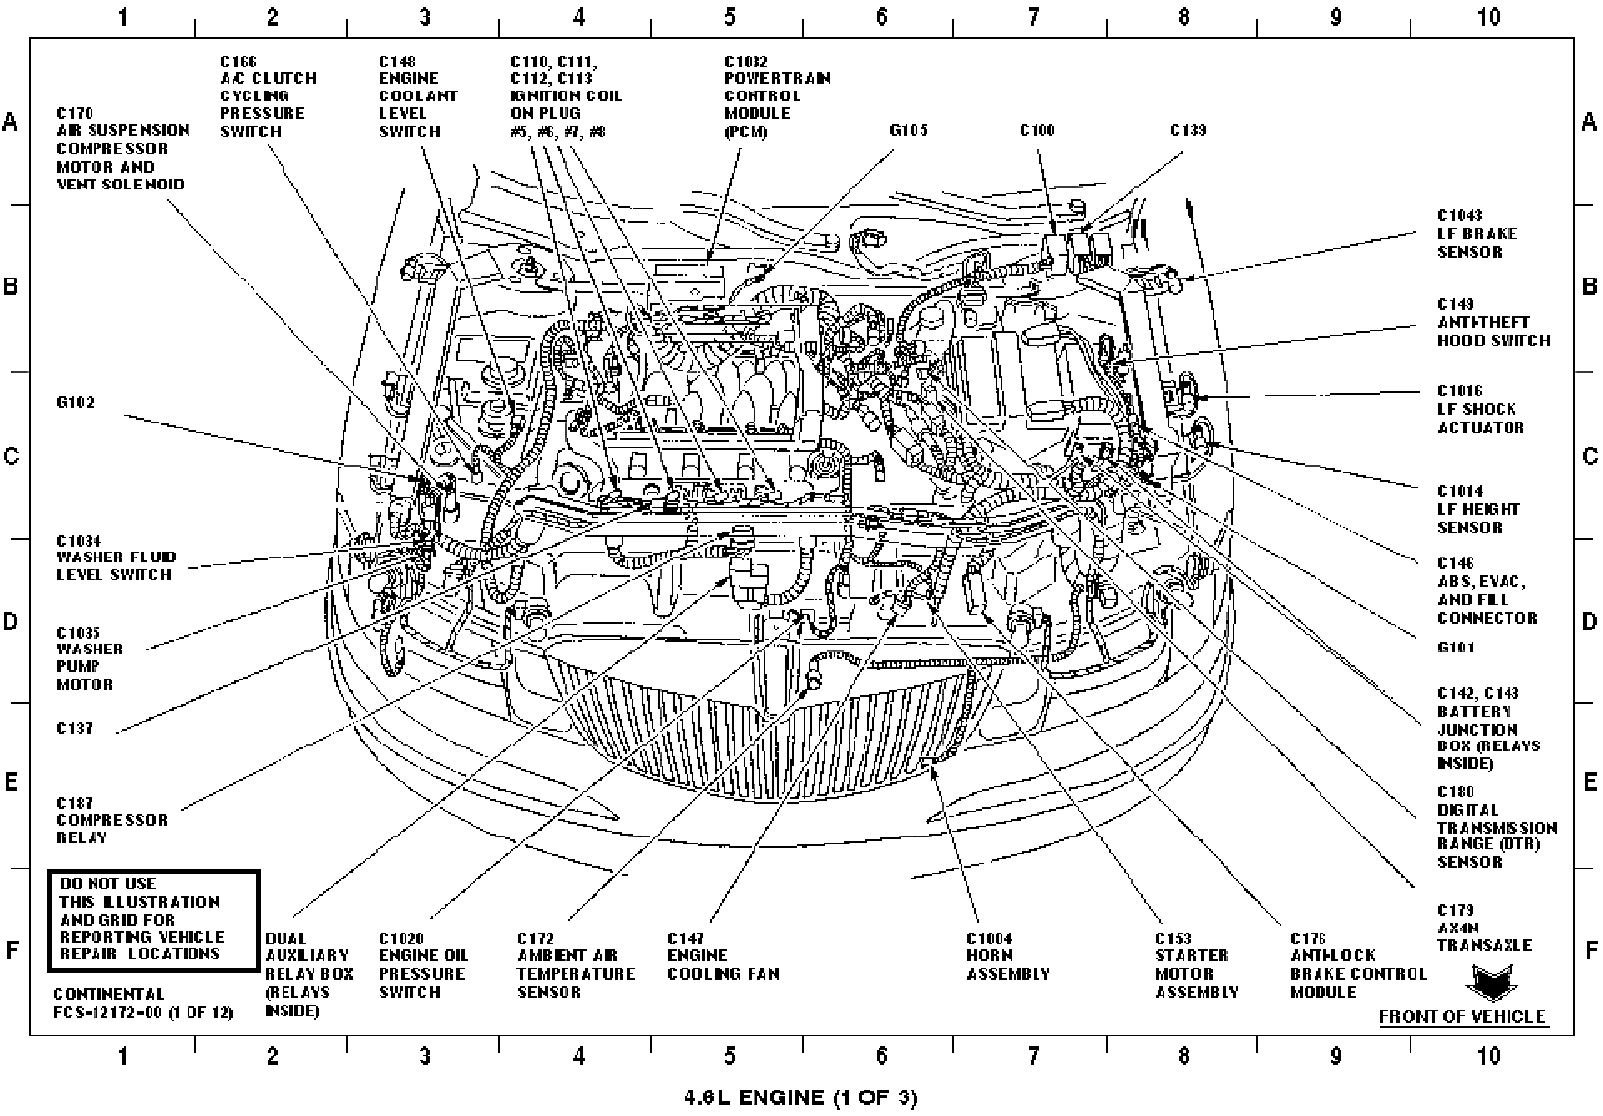 ZKB_047] Lincoln Town Car Engine Diagram | diode-visible wiring diagram  value | diode-visible.iluoghicomunisullacultura.it | 1998 Lincoln Town Car Radiator Fan Wiring Diagram |  | iluoghicomunisullacultura.it